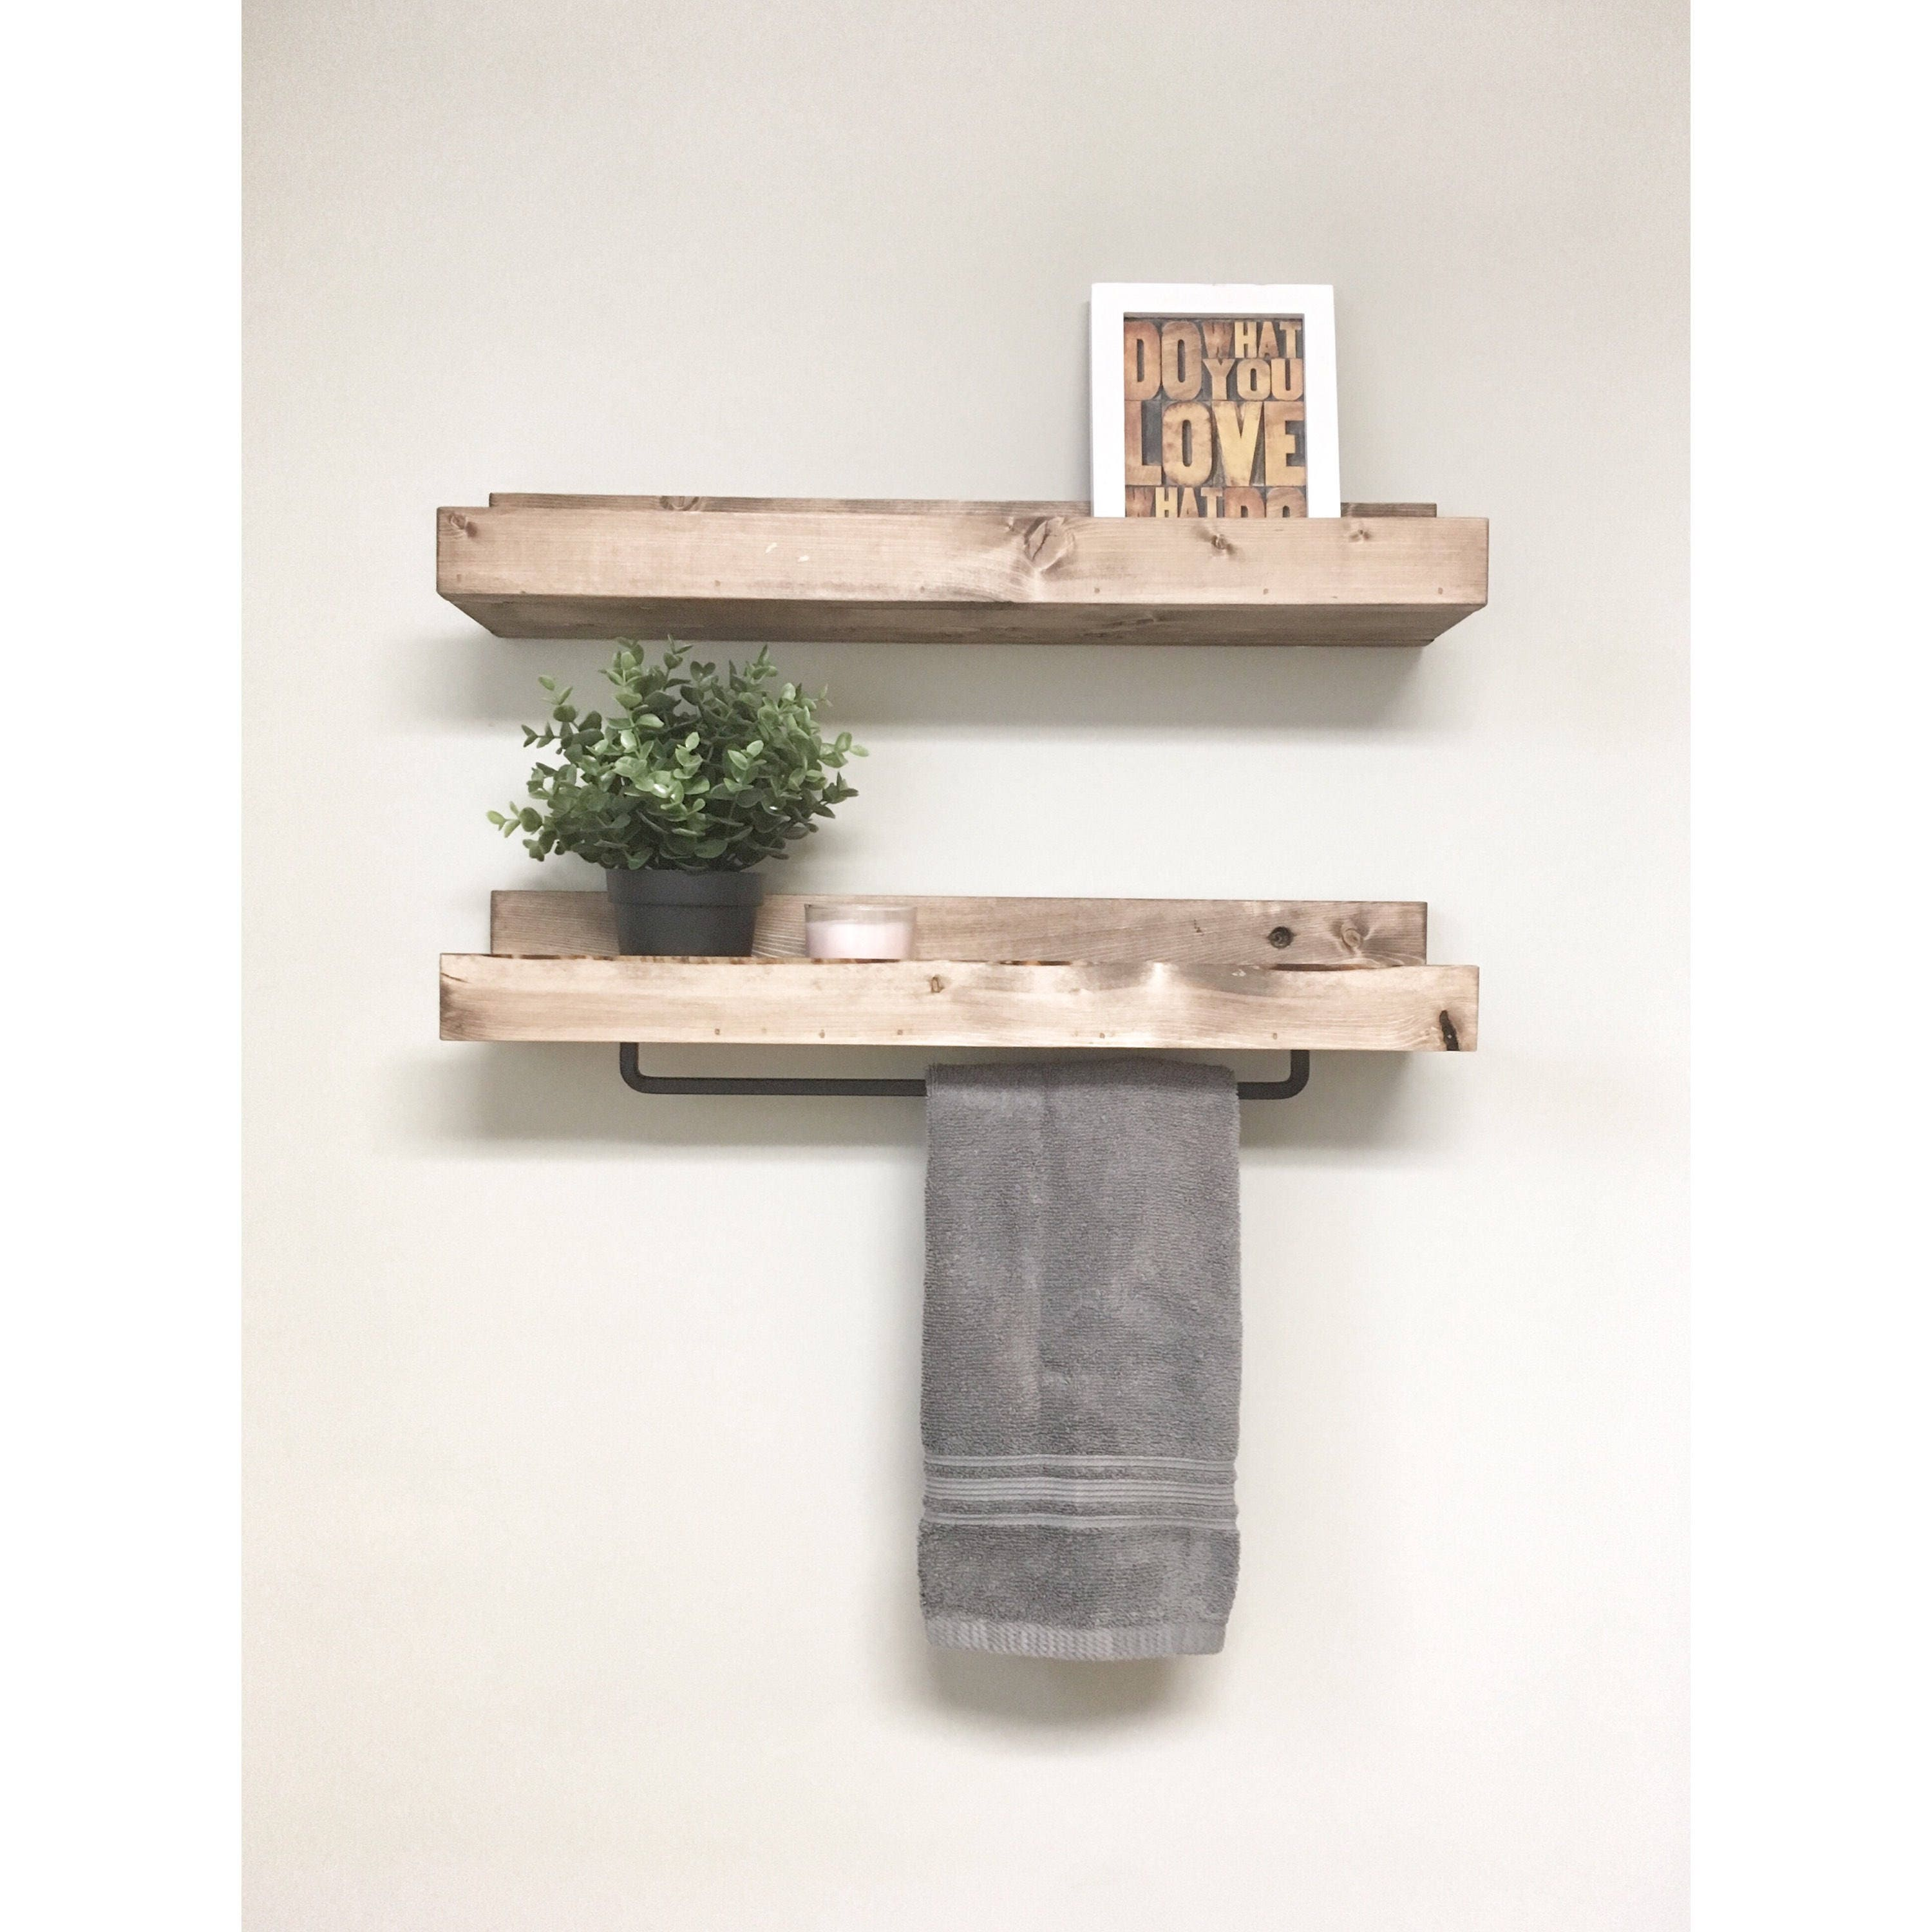 Rustic Wooden Rack Ledge Shelves, Ledge Shelves, Wooden Rack, Rustic ...